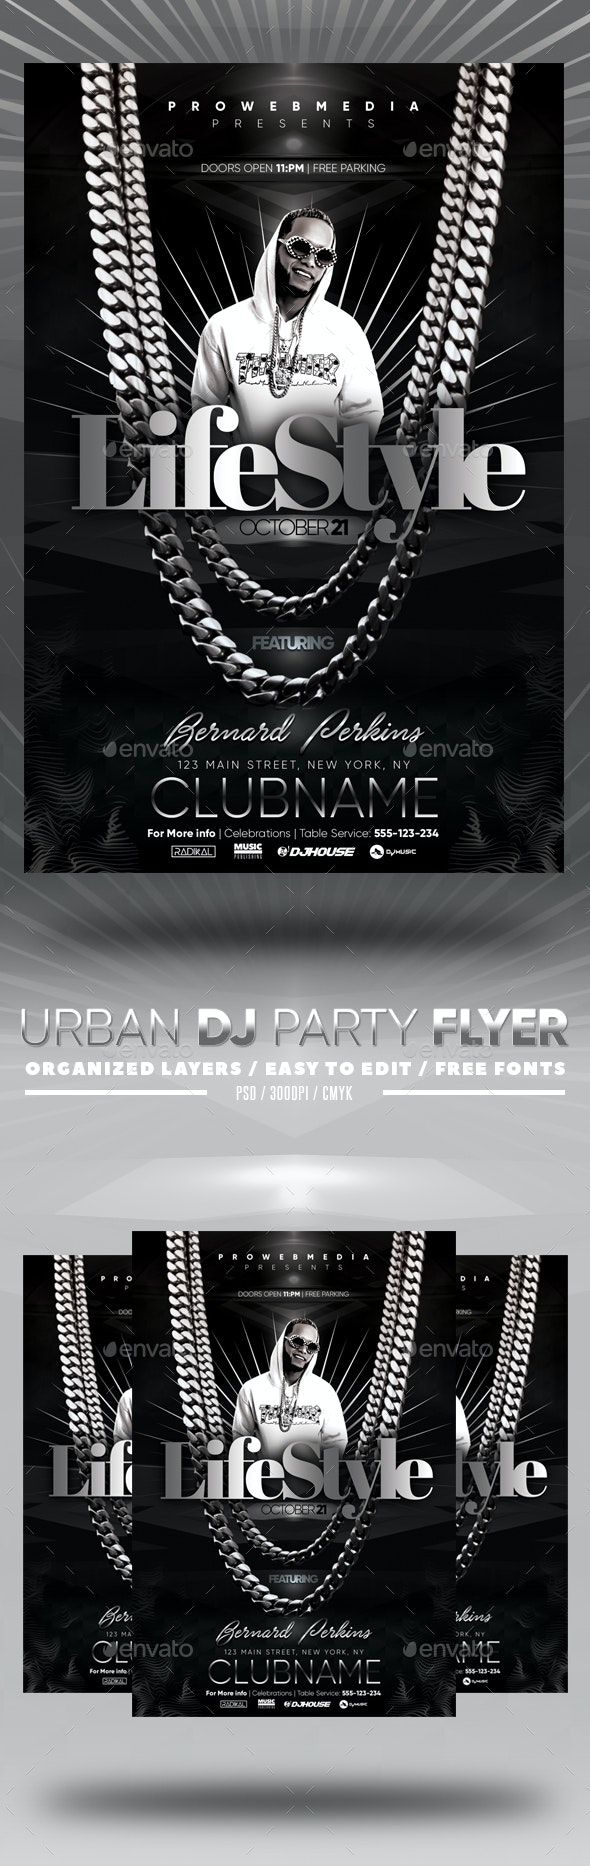 Urban DJ Party Flyer - Clubs & Parties Events